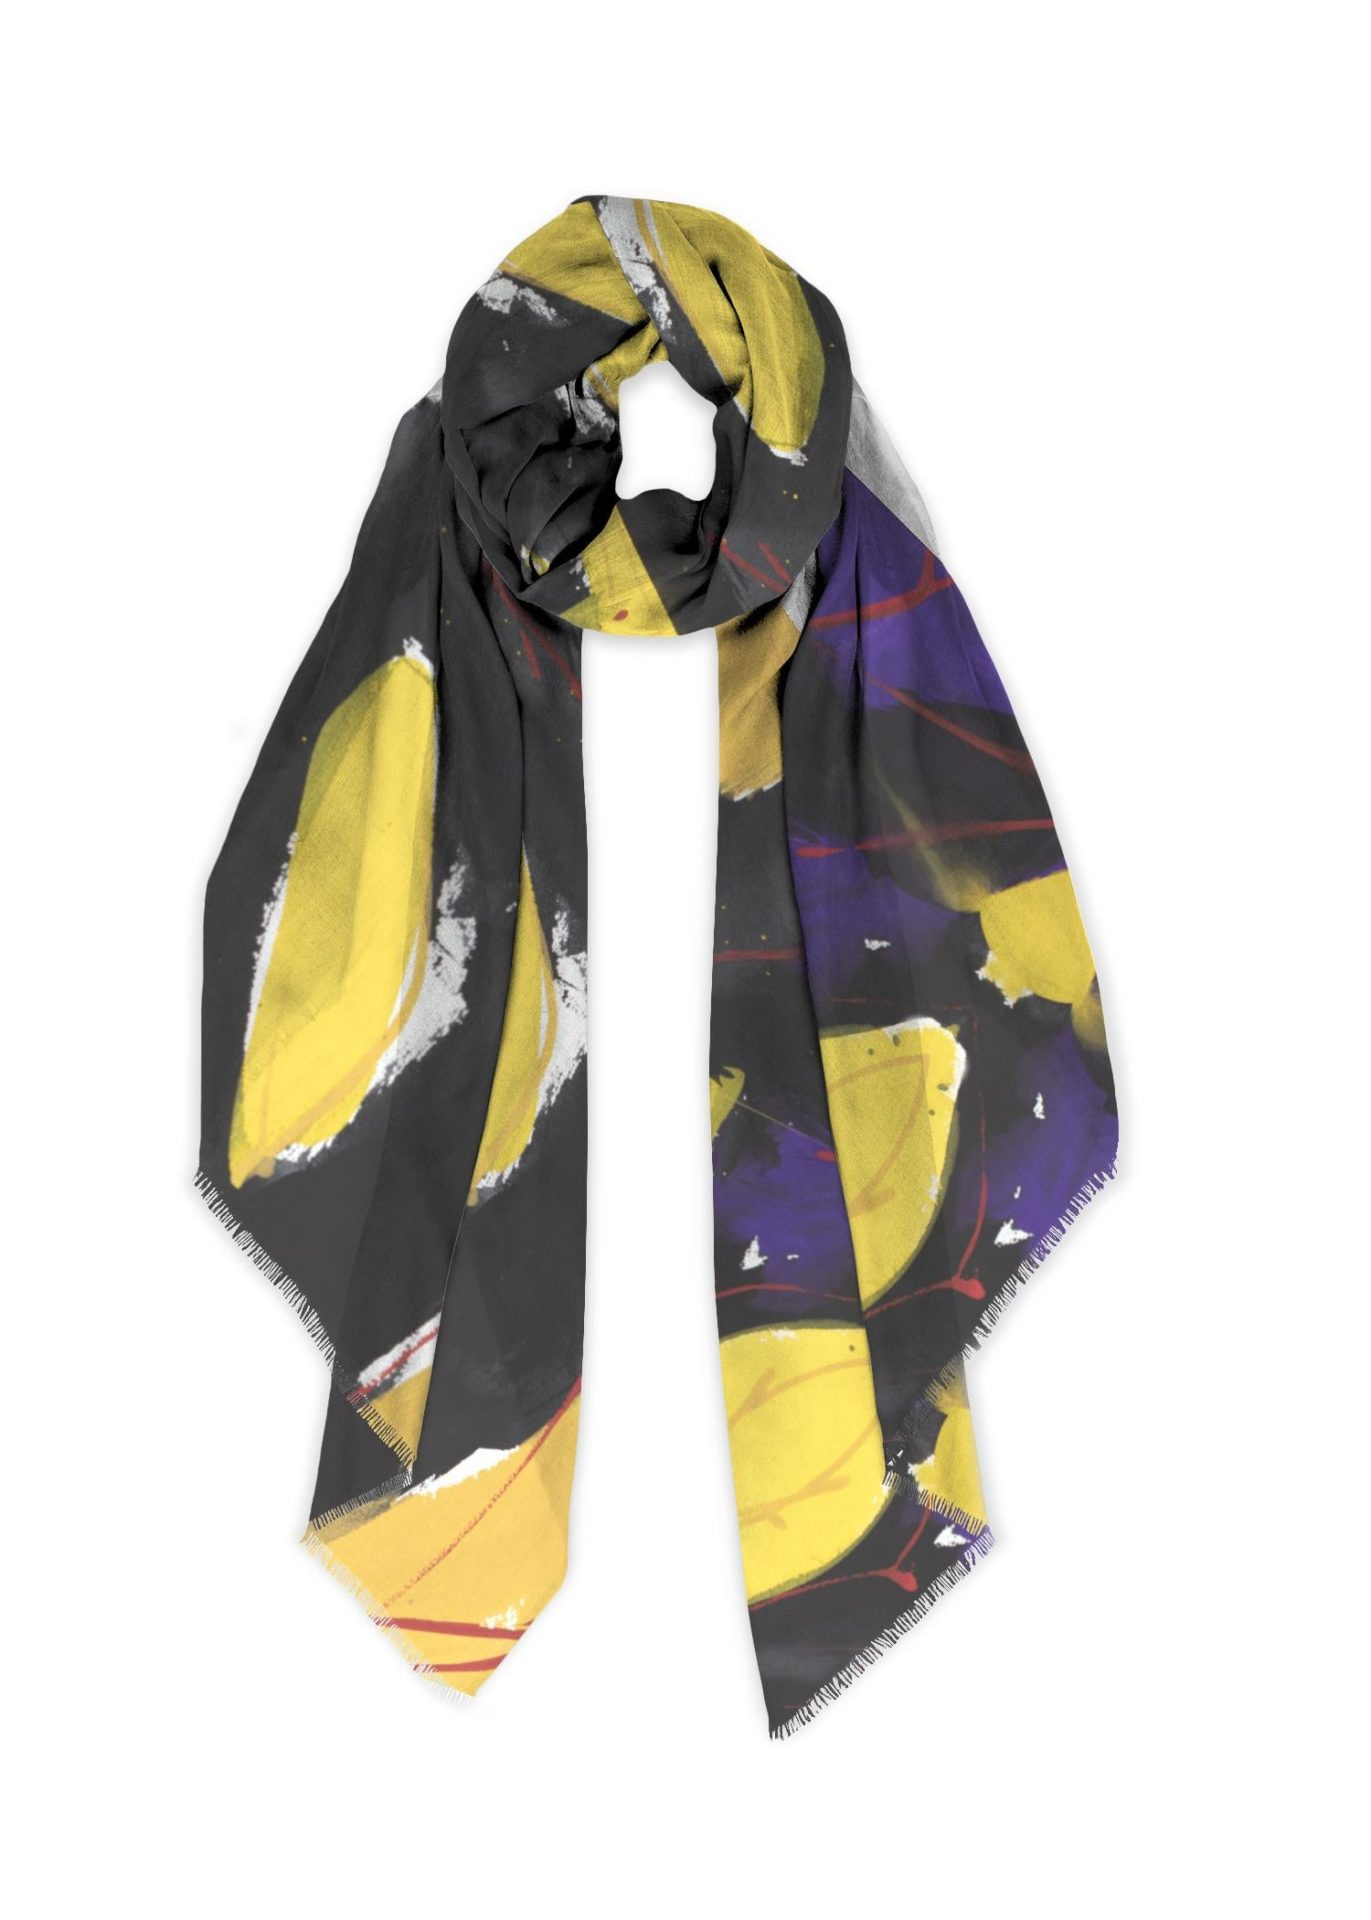 Cotton Scarf, yellows black and red., 28x78